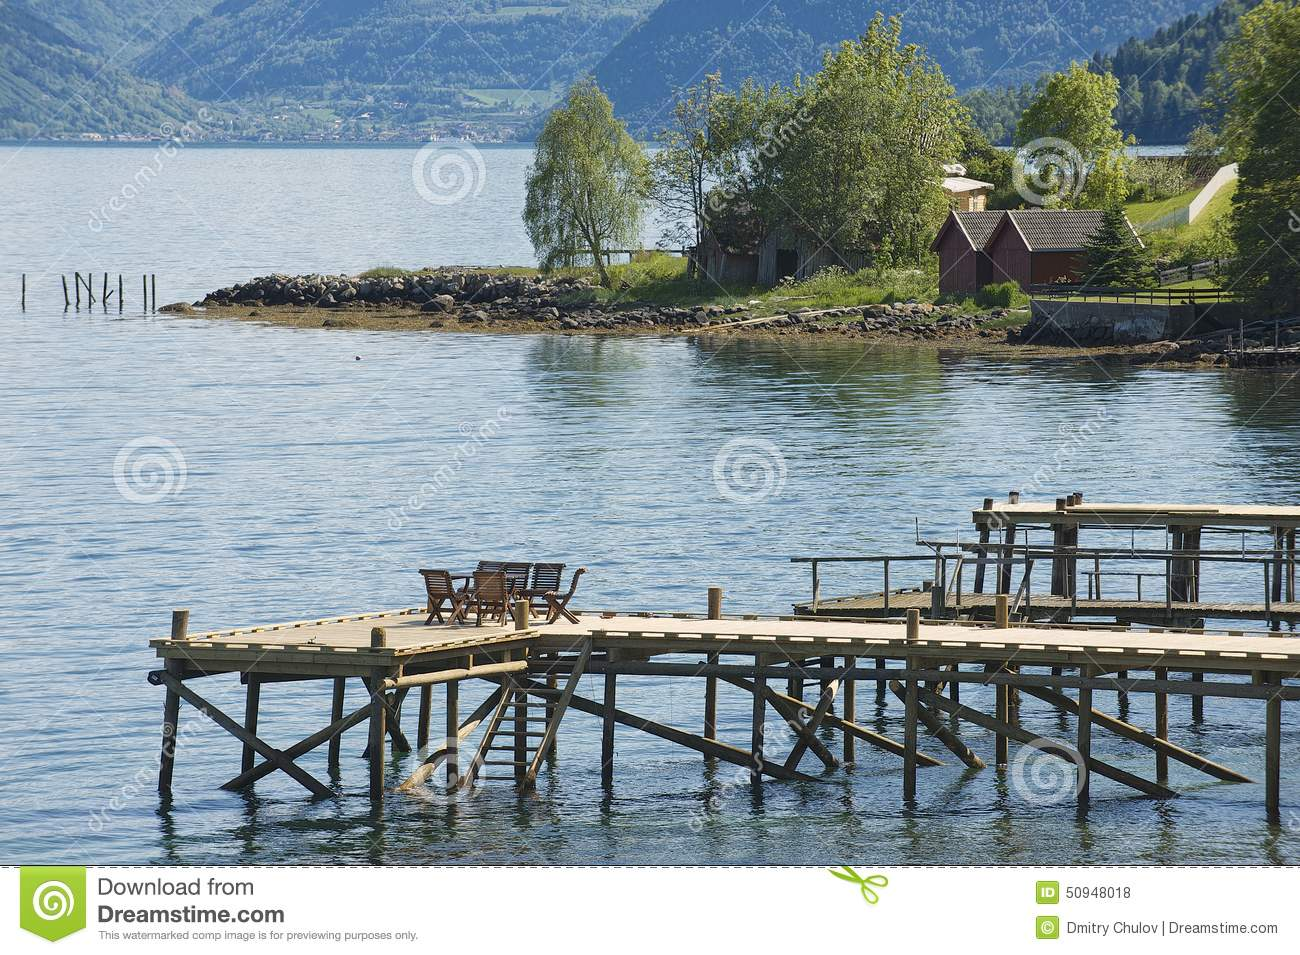 Download Chairs At The Pier Of A Fjord In Balestrand, Norway. Stock Photo